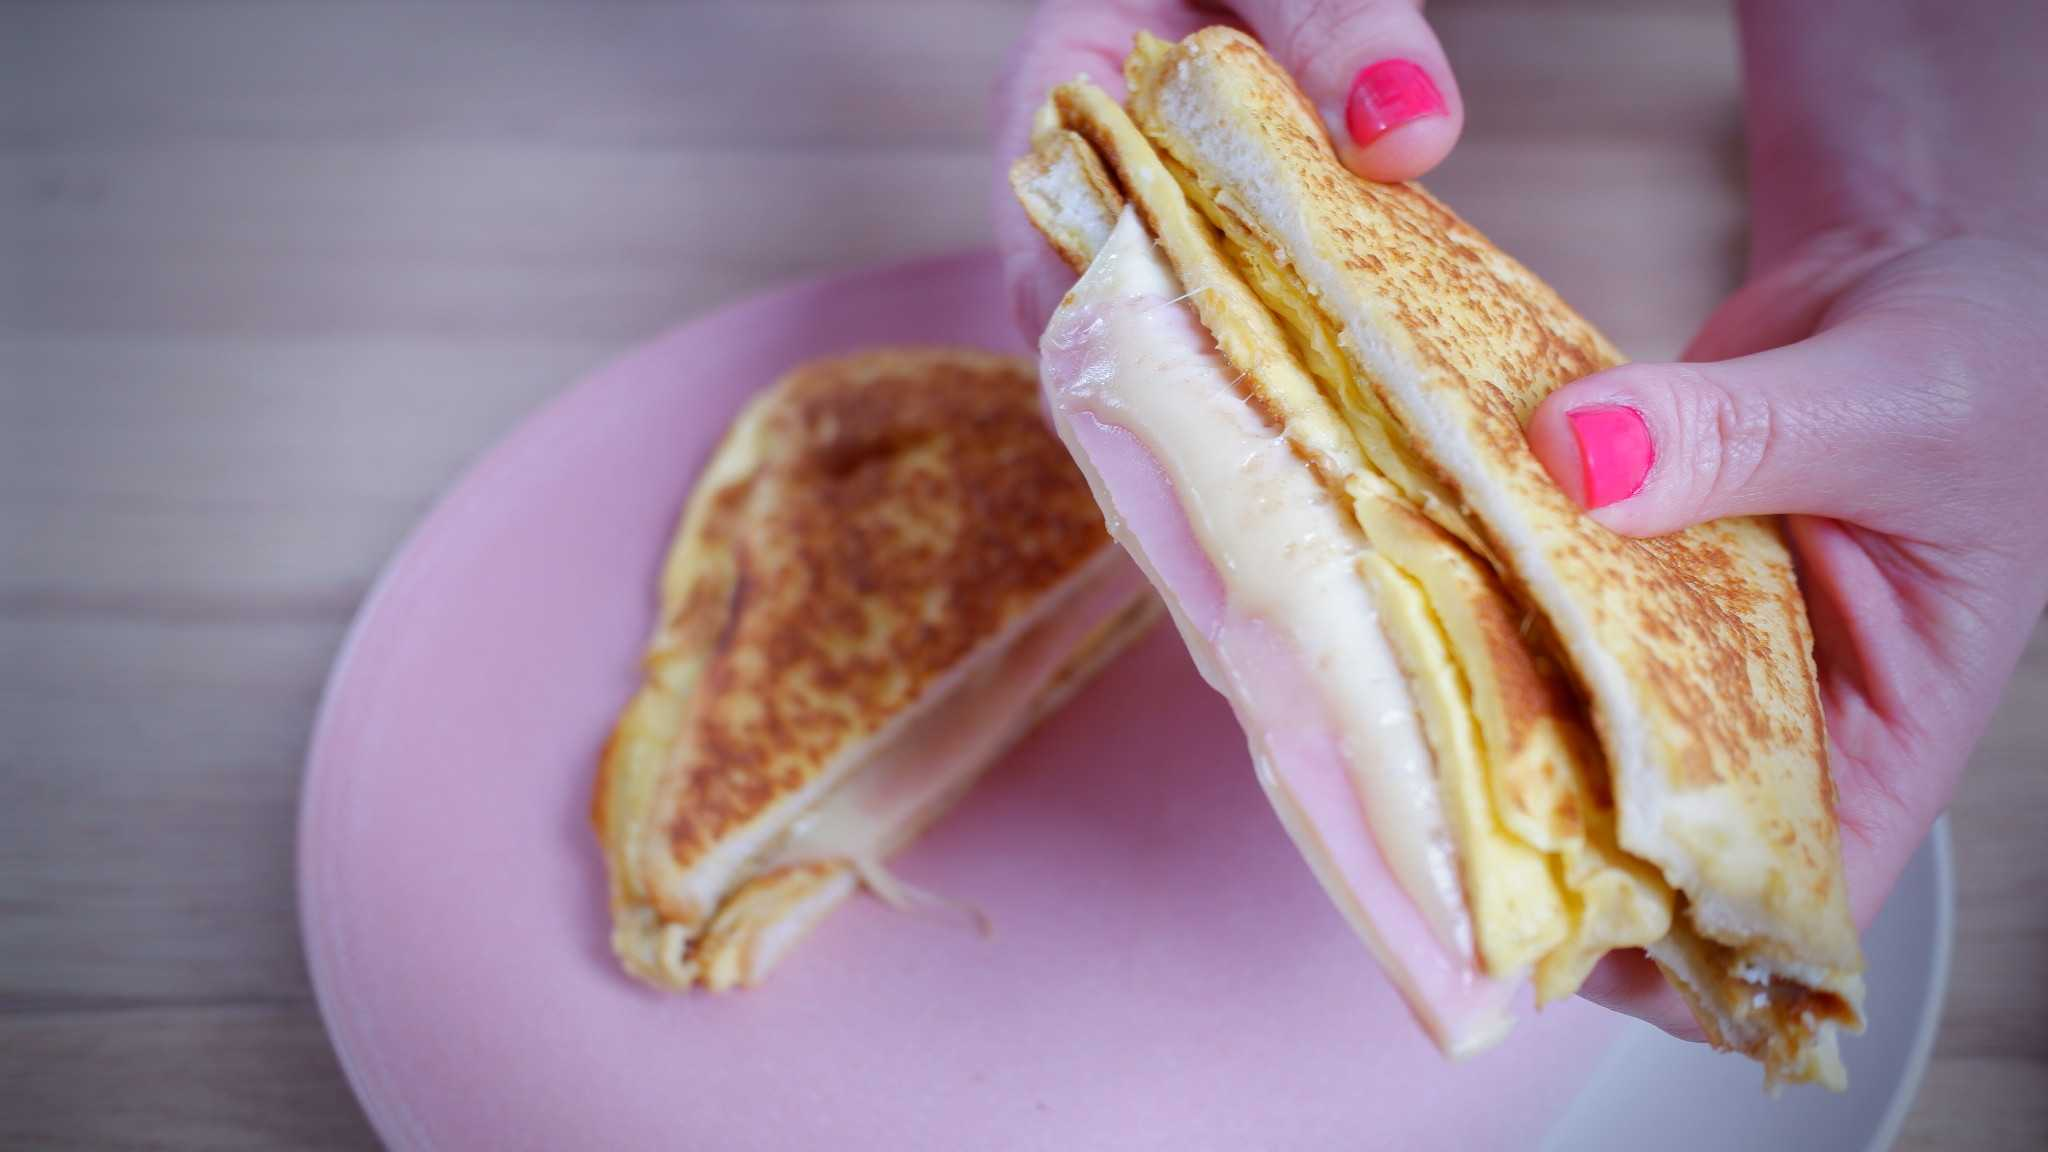 9Honey Every Day Kitchen: This is how you do that omelette egg bread hack